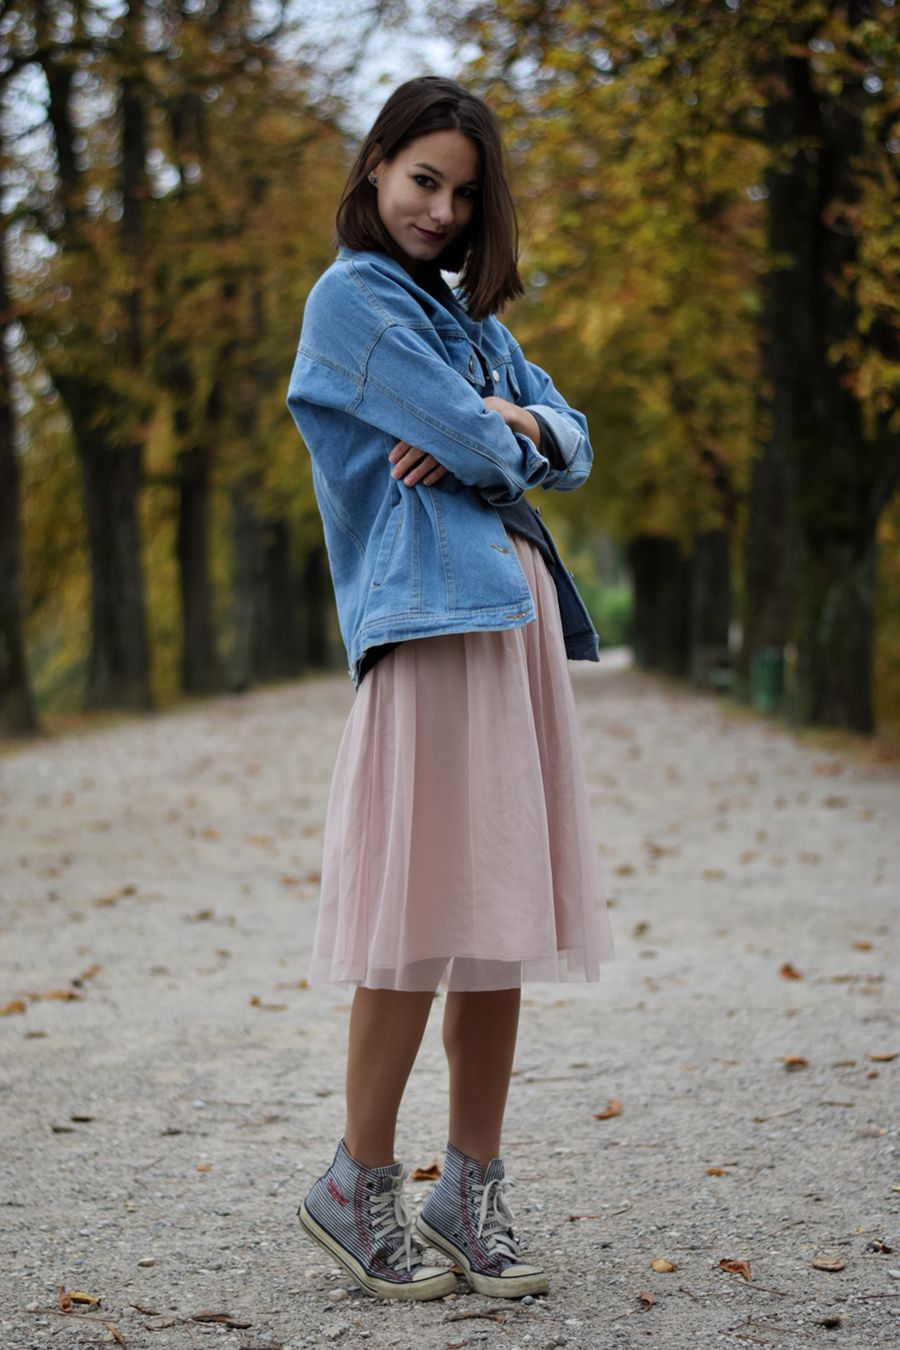 c834c4af711 Pastel pink ballet tulle midi skirt with a denim jacket and a pair of  sneakers. Fashion blogger outfit inspiration.